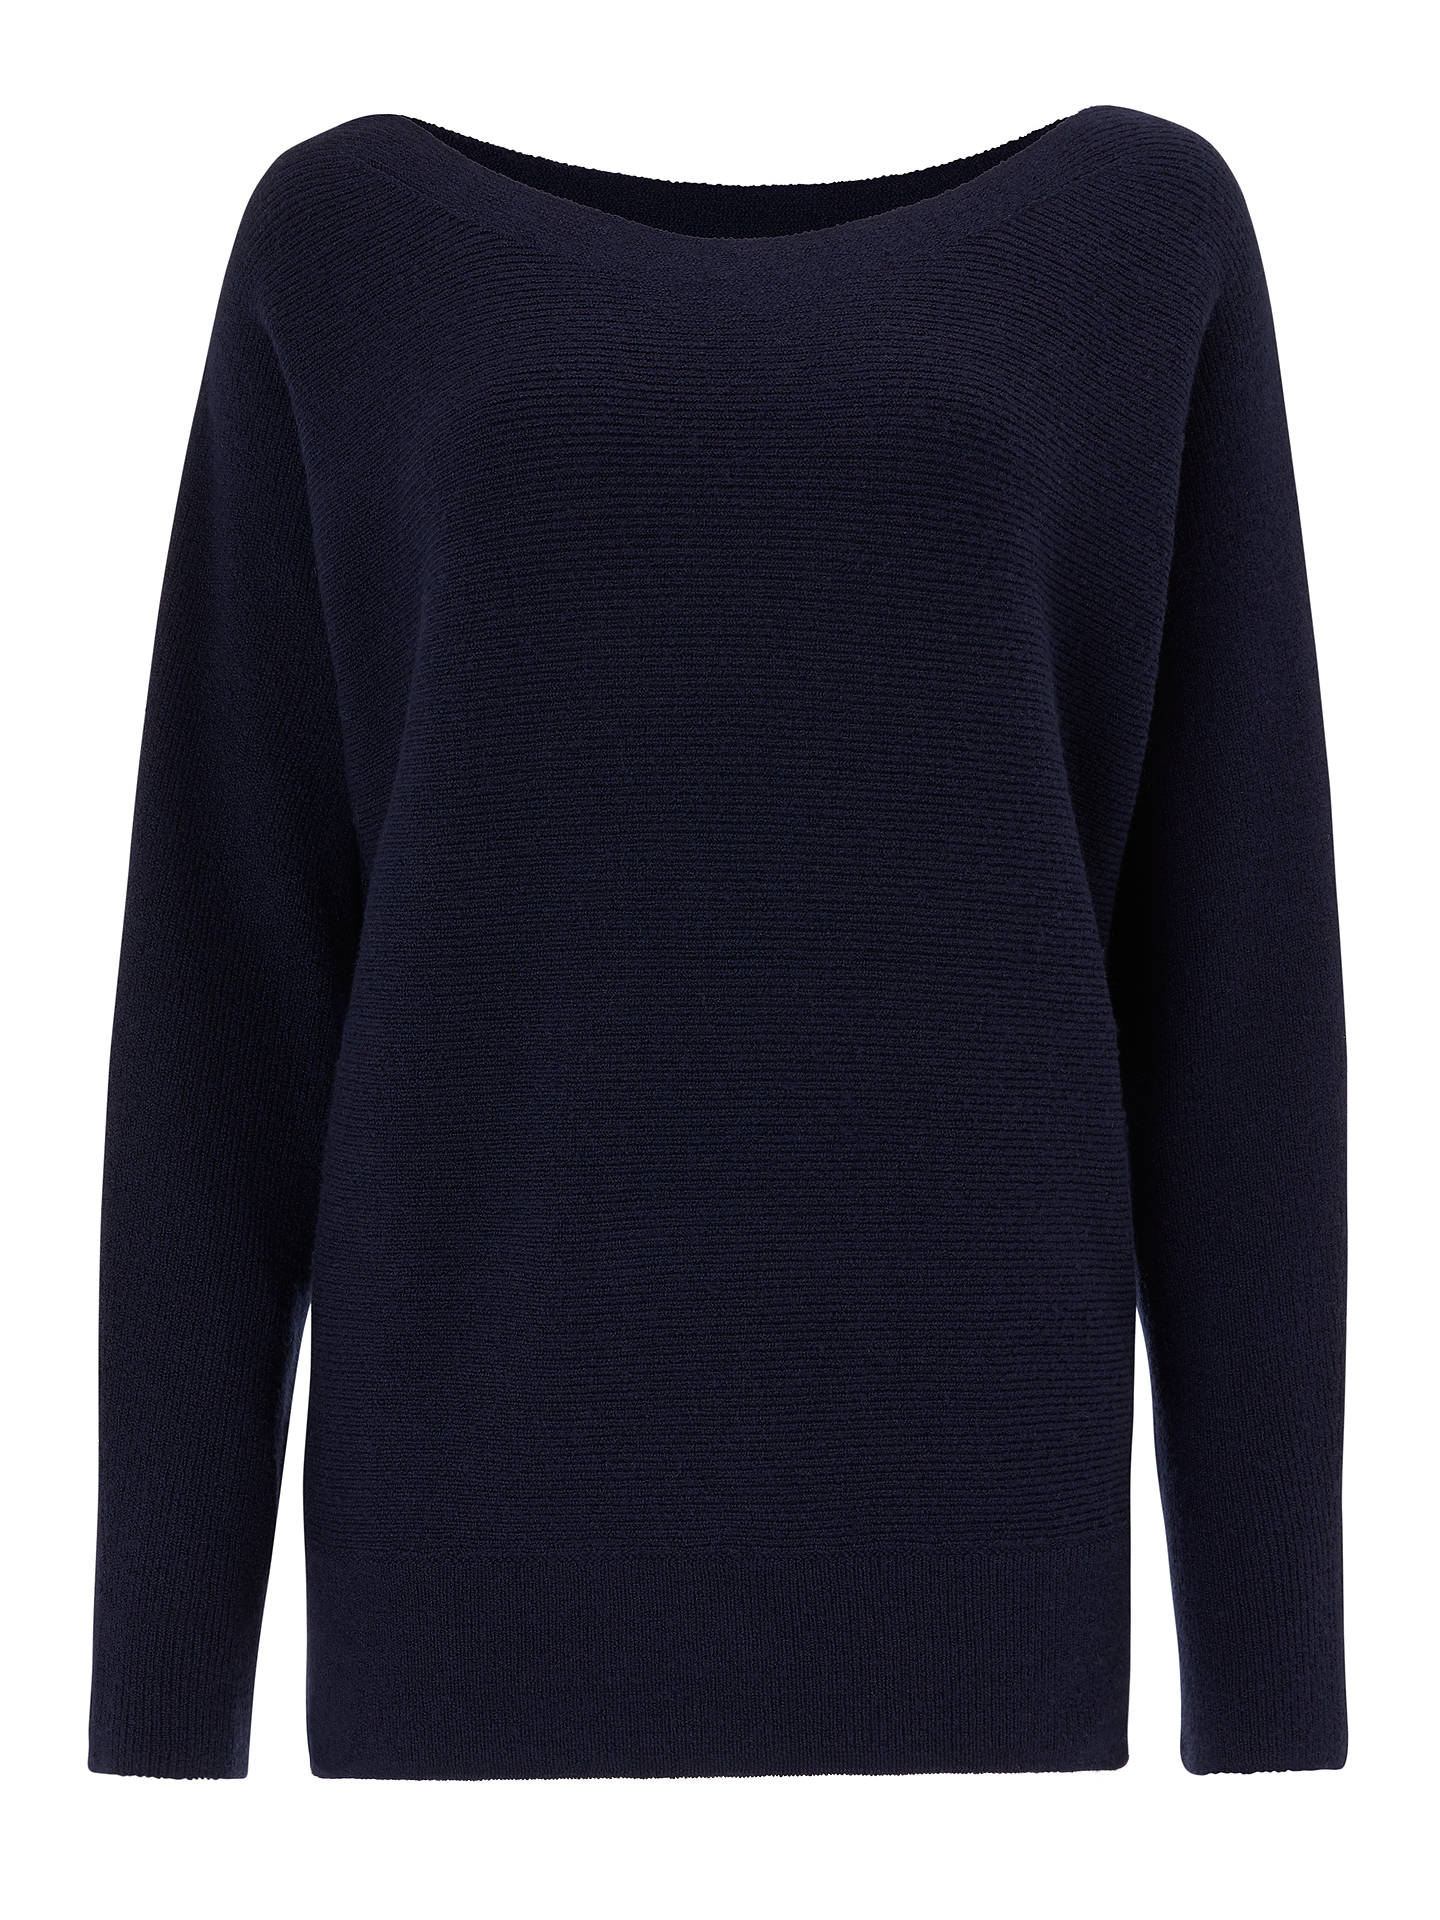 BuyJohn Lewis & Partners Dolman Sleeve Ribbed Boat Neck Jumper, Navy, 12 Online at johnlewis.com